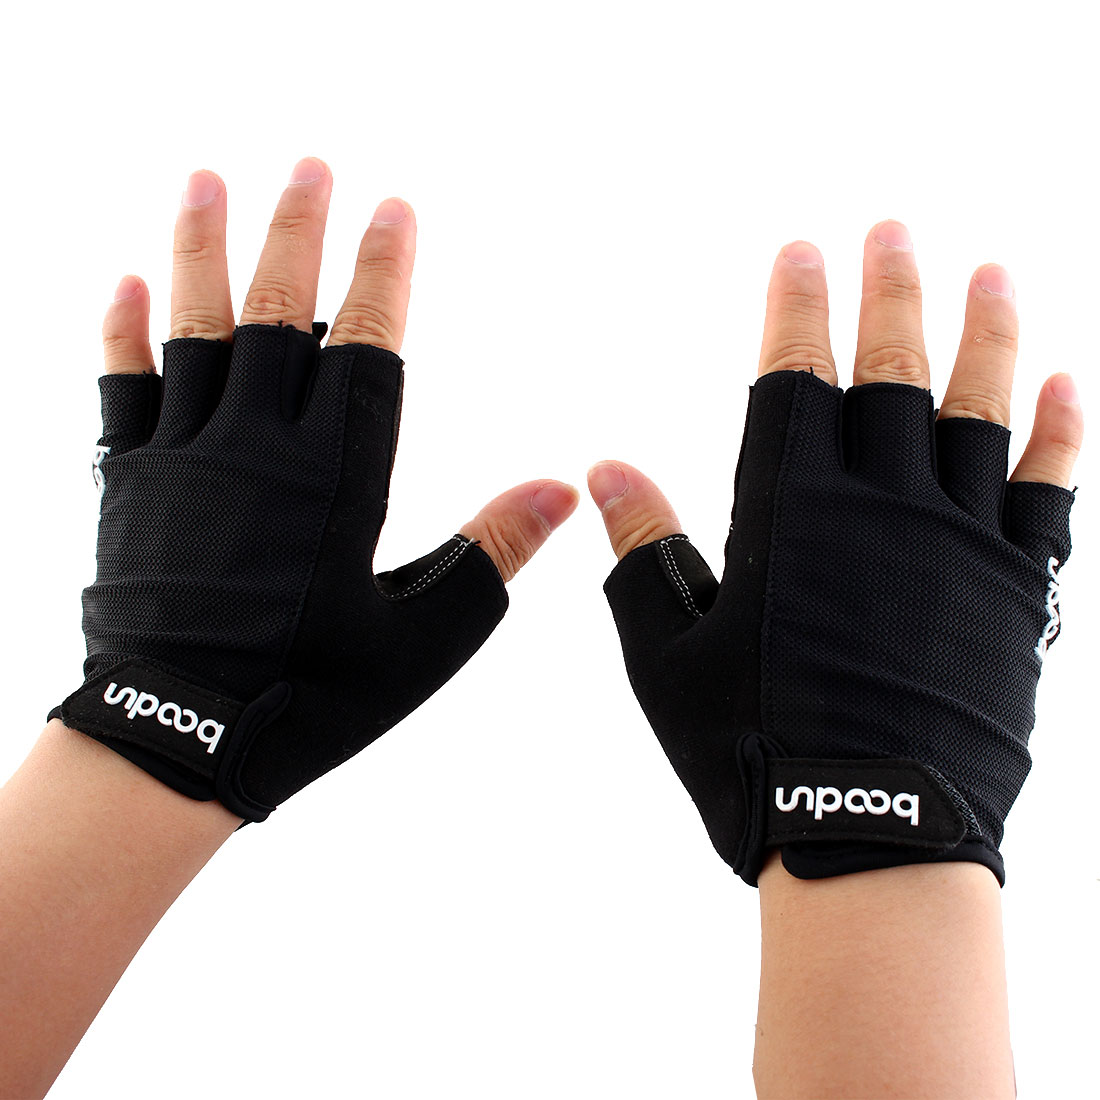 Boodun Authorized Outdoor Cycling Gym Workout Training Weight Lifting Half Finger Gloves Black Size XL Pair for Men Women